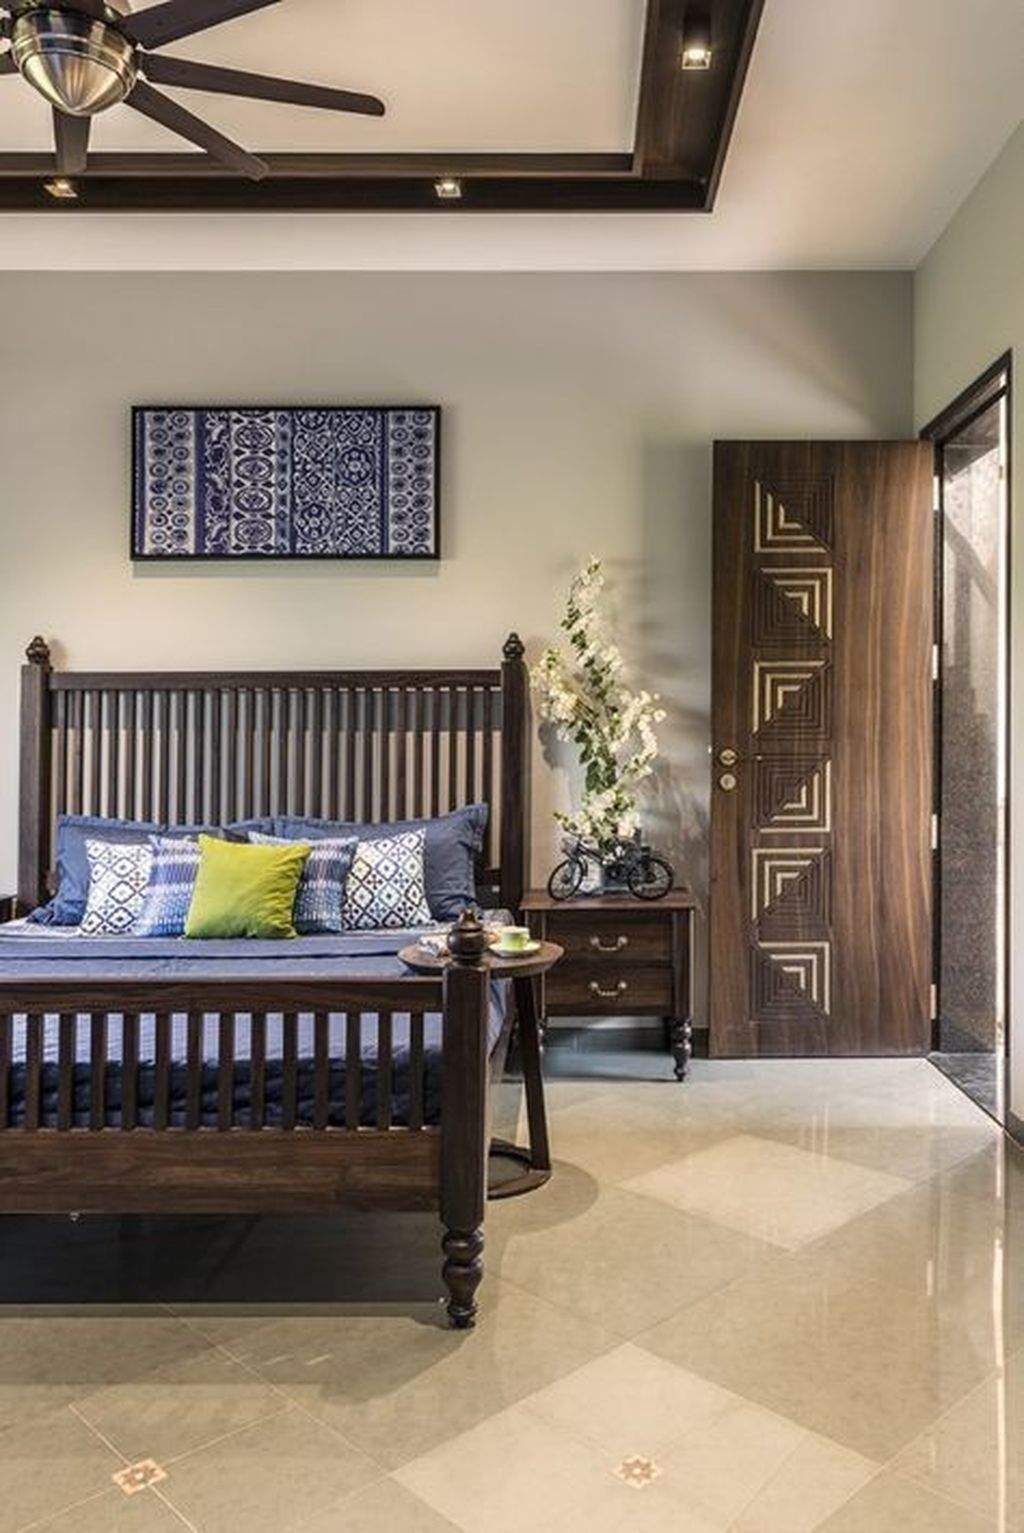 34 Beautiful Indian Home Decor Ideas in 2020   Bedroom ...